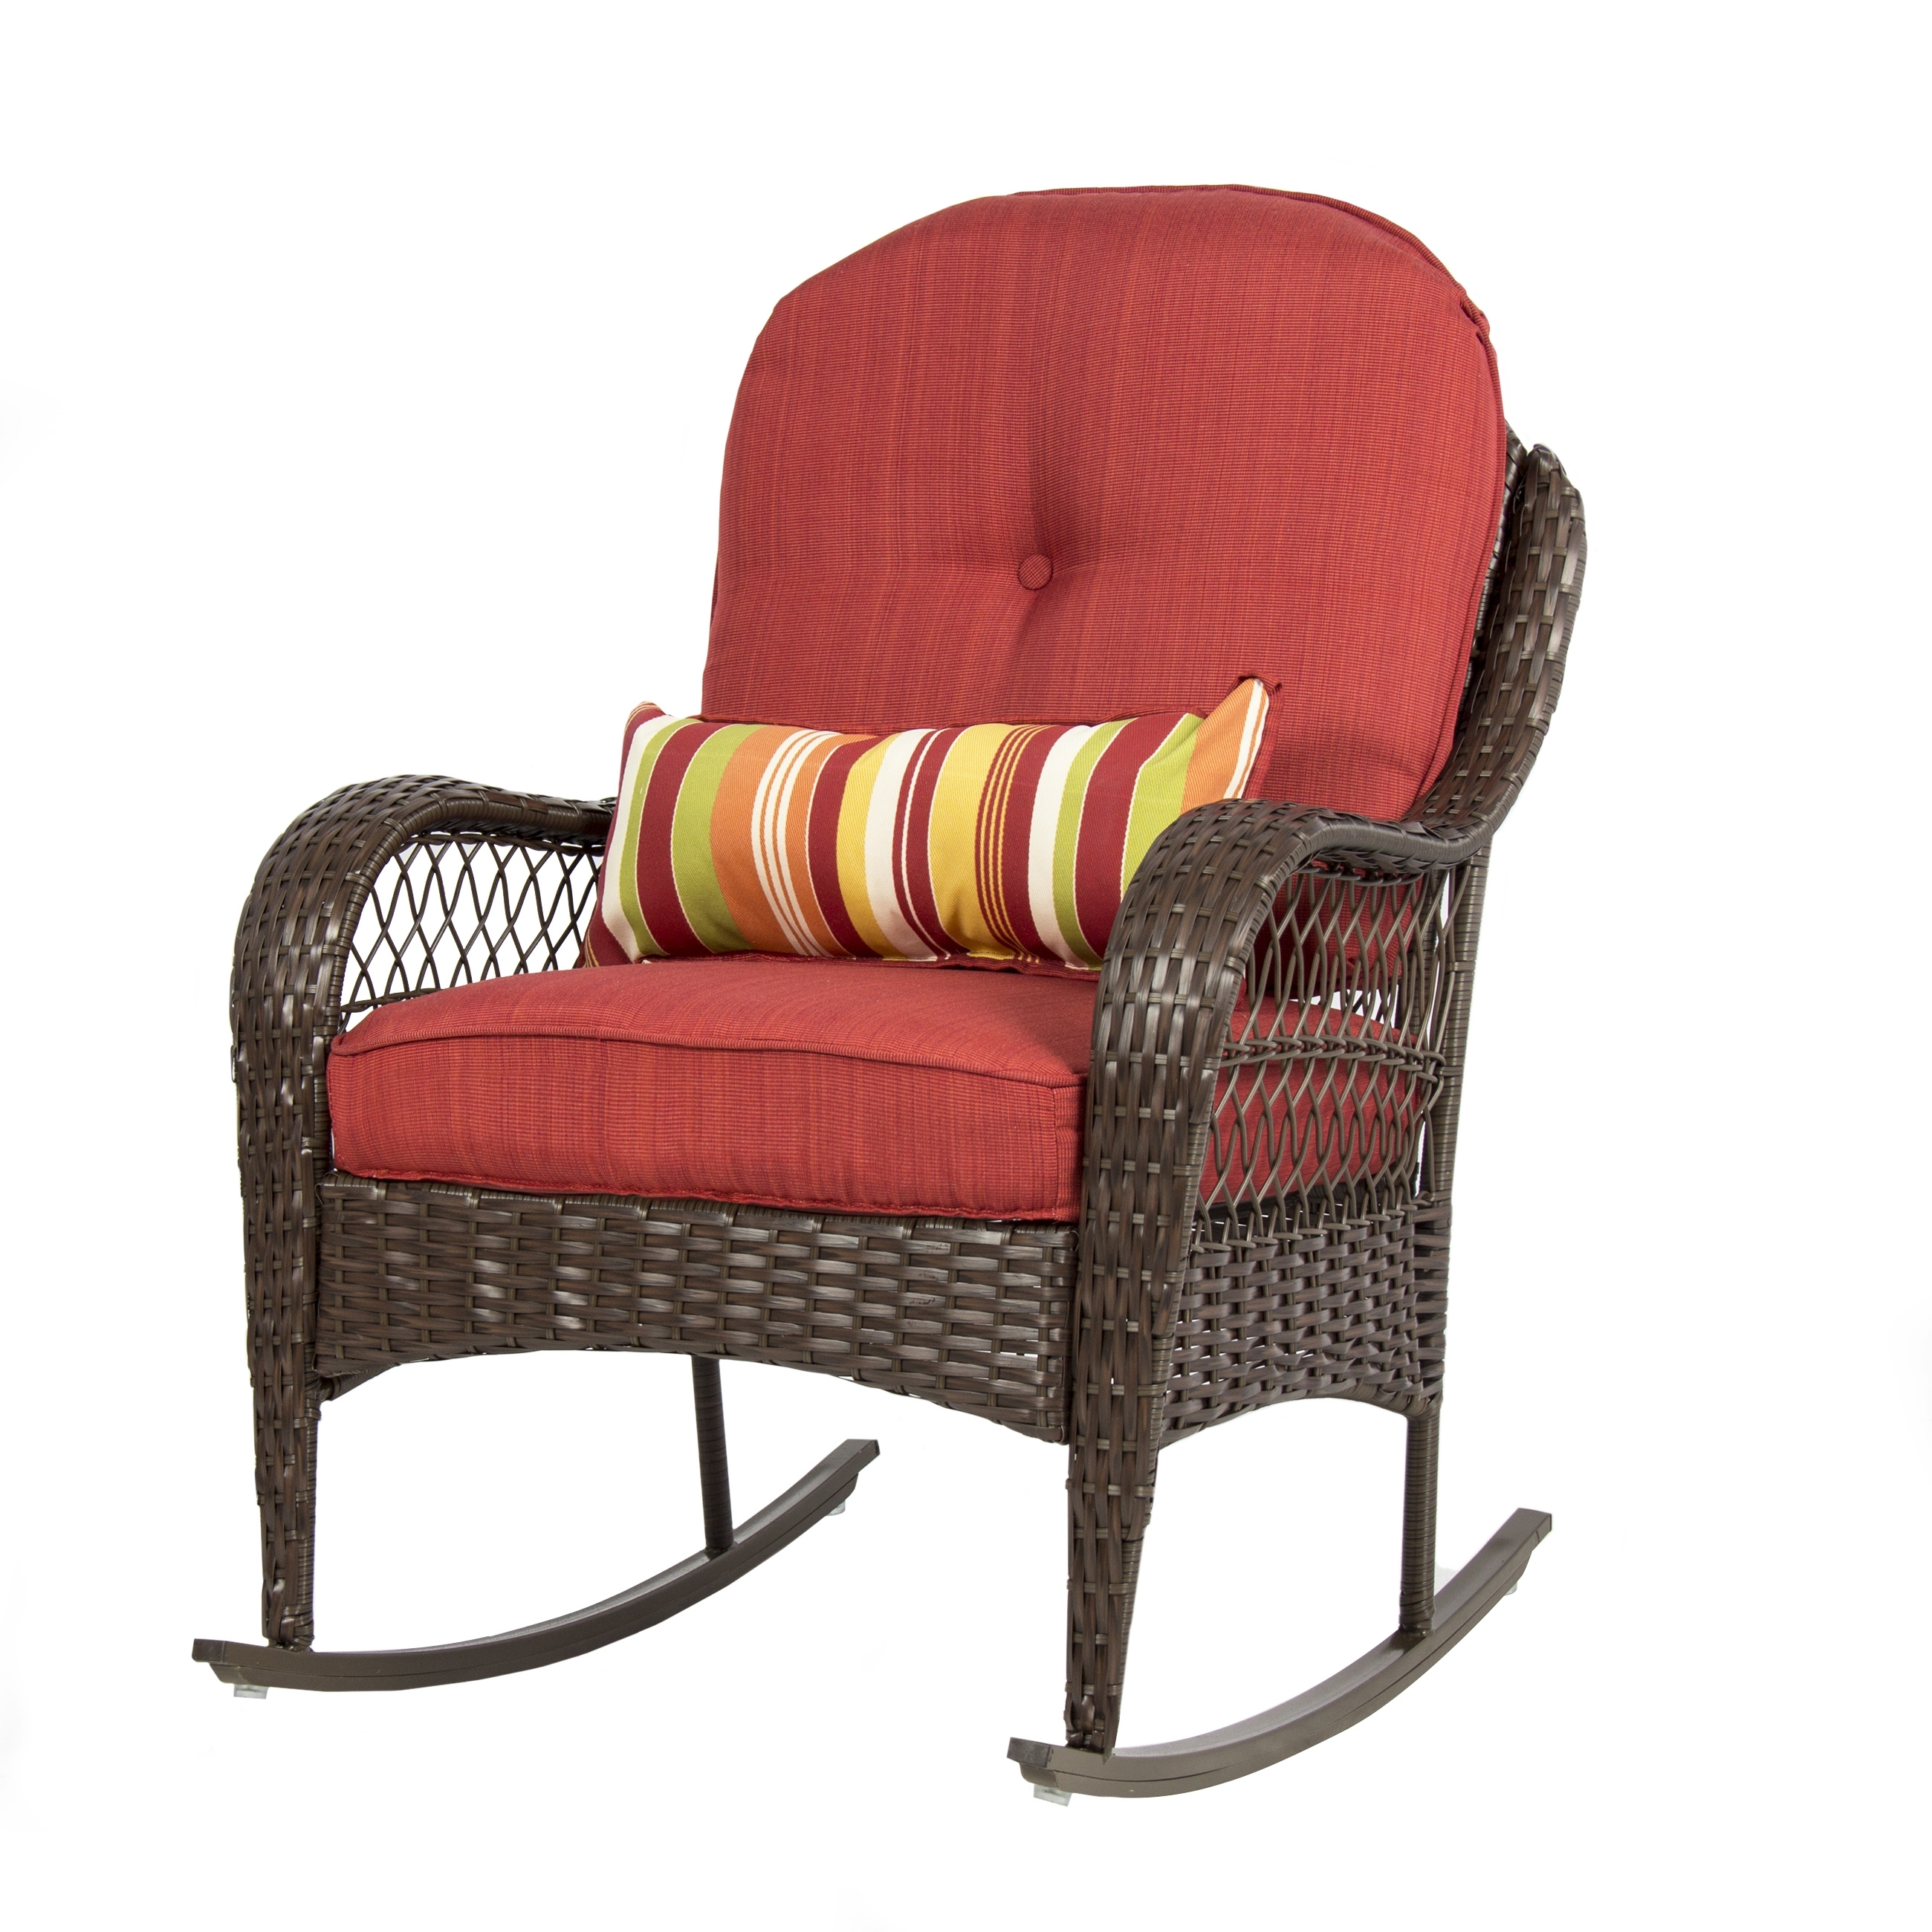 Red Patio Rocking Chairs Throughout Recent Bestchoiceproducts: Best Choice Products Wicker Rocking Chair Patio (View 12 of 15)